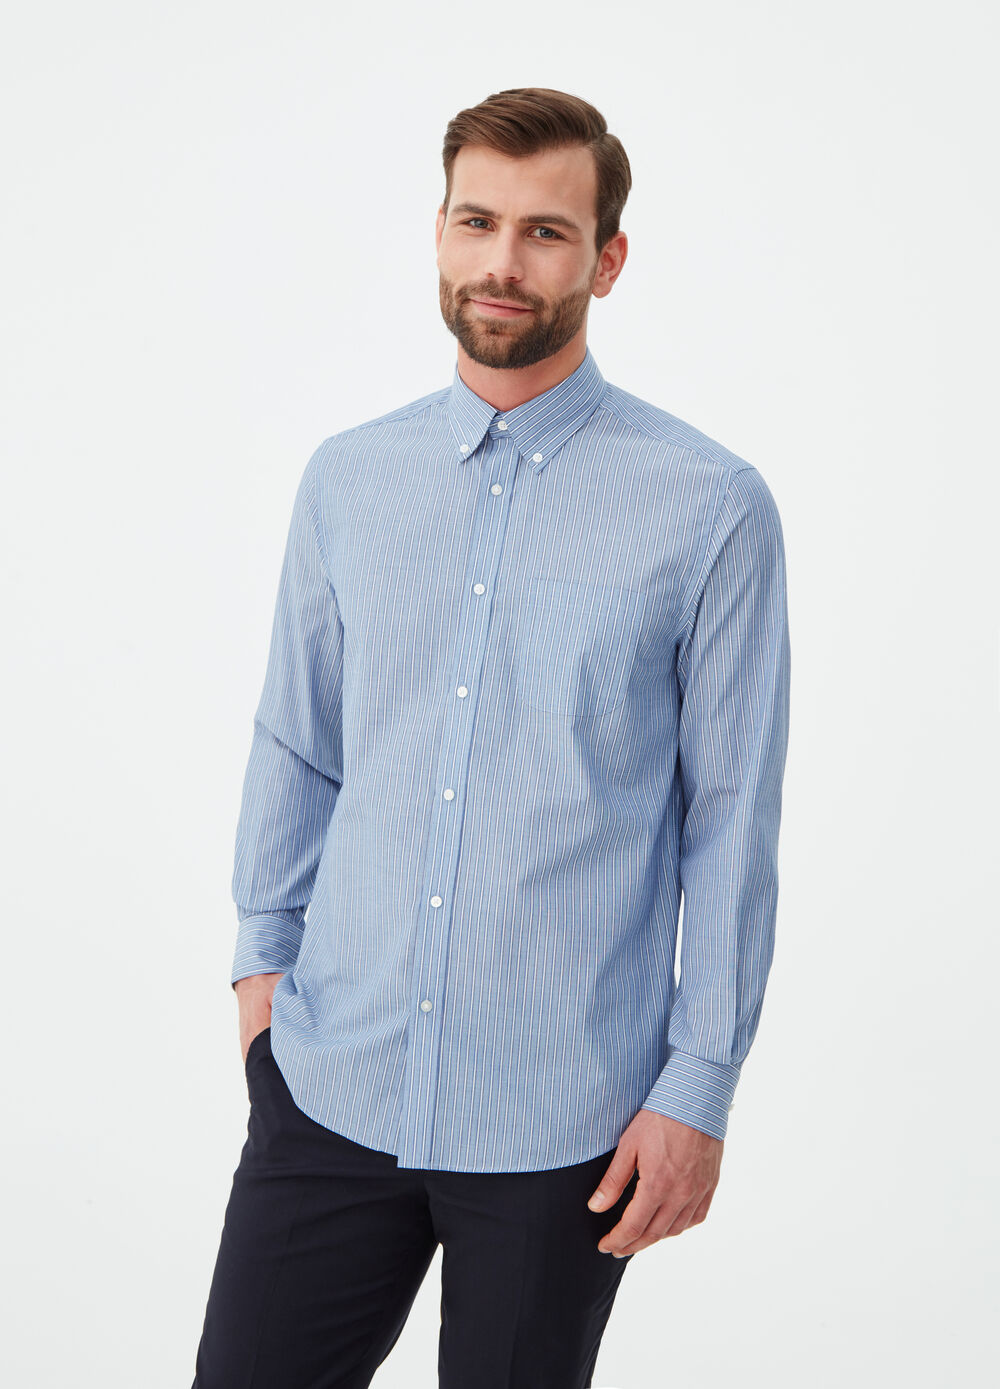 Regular-fit shirt with rounded striped cuffs